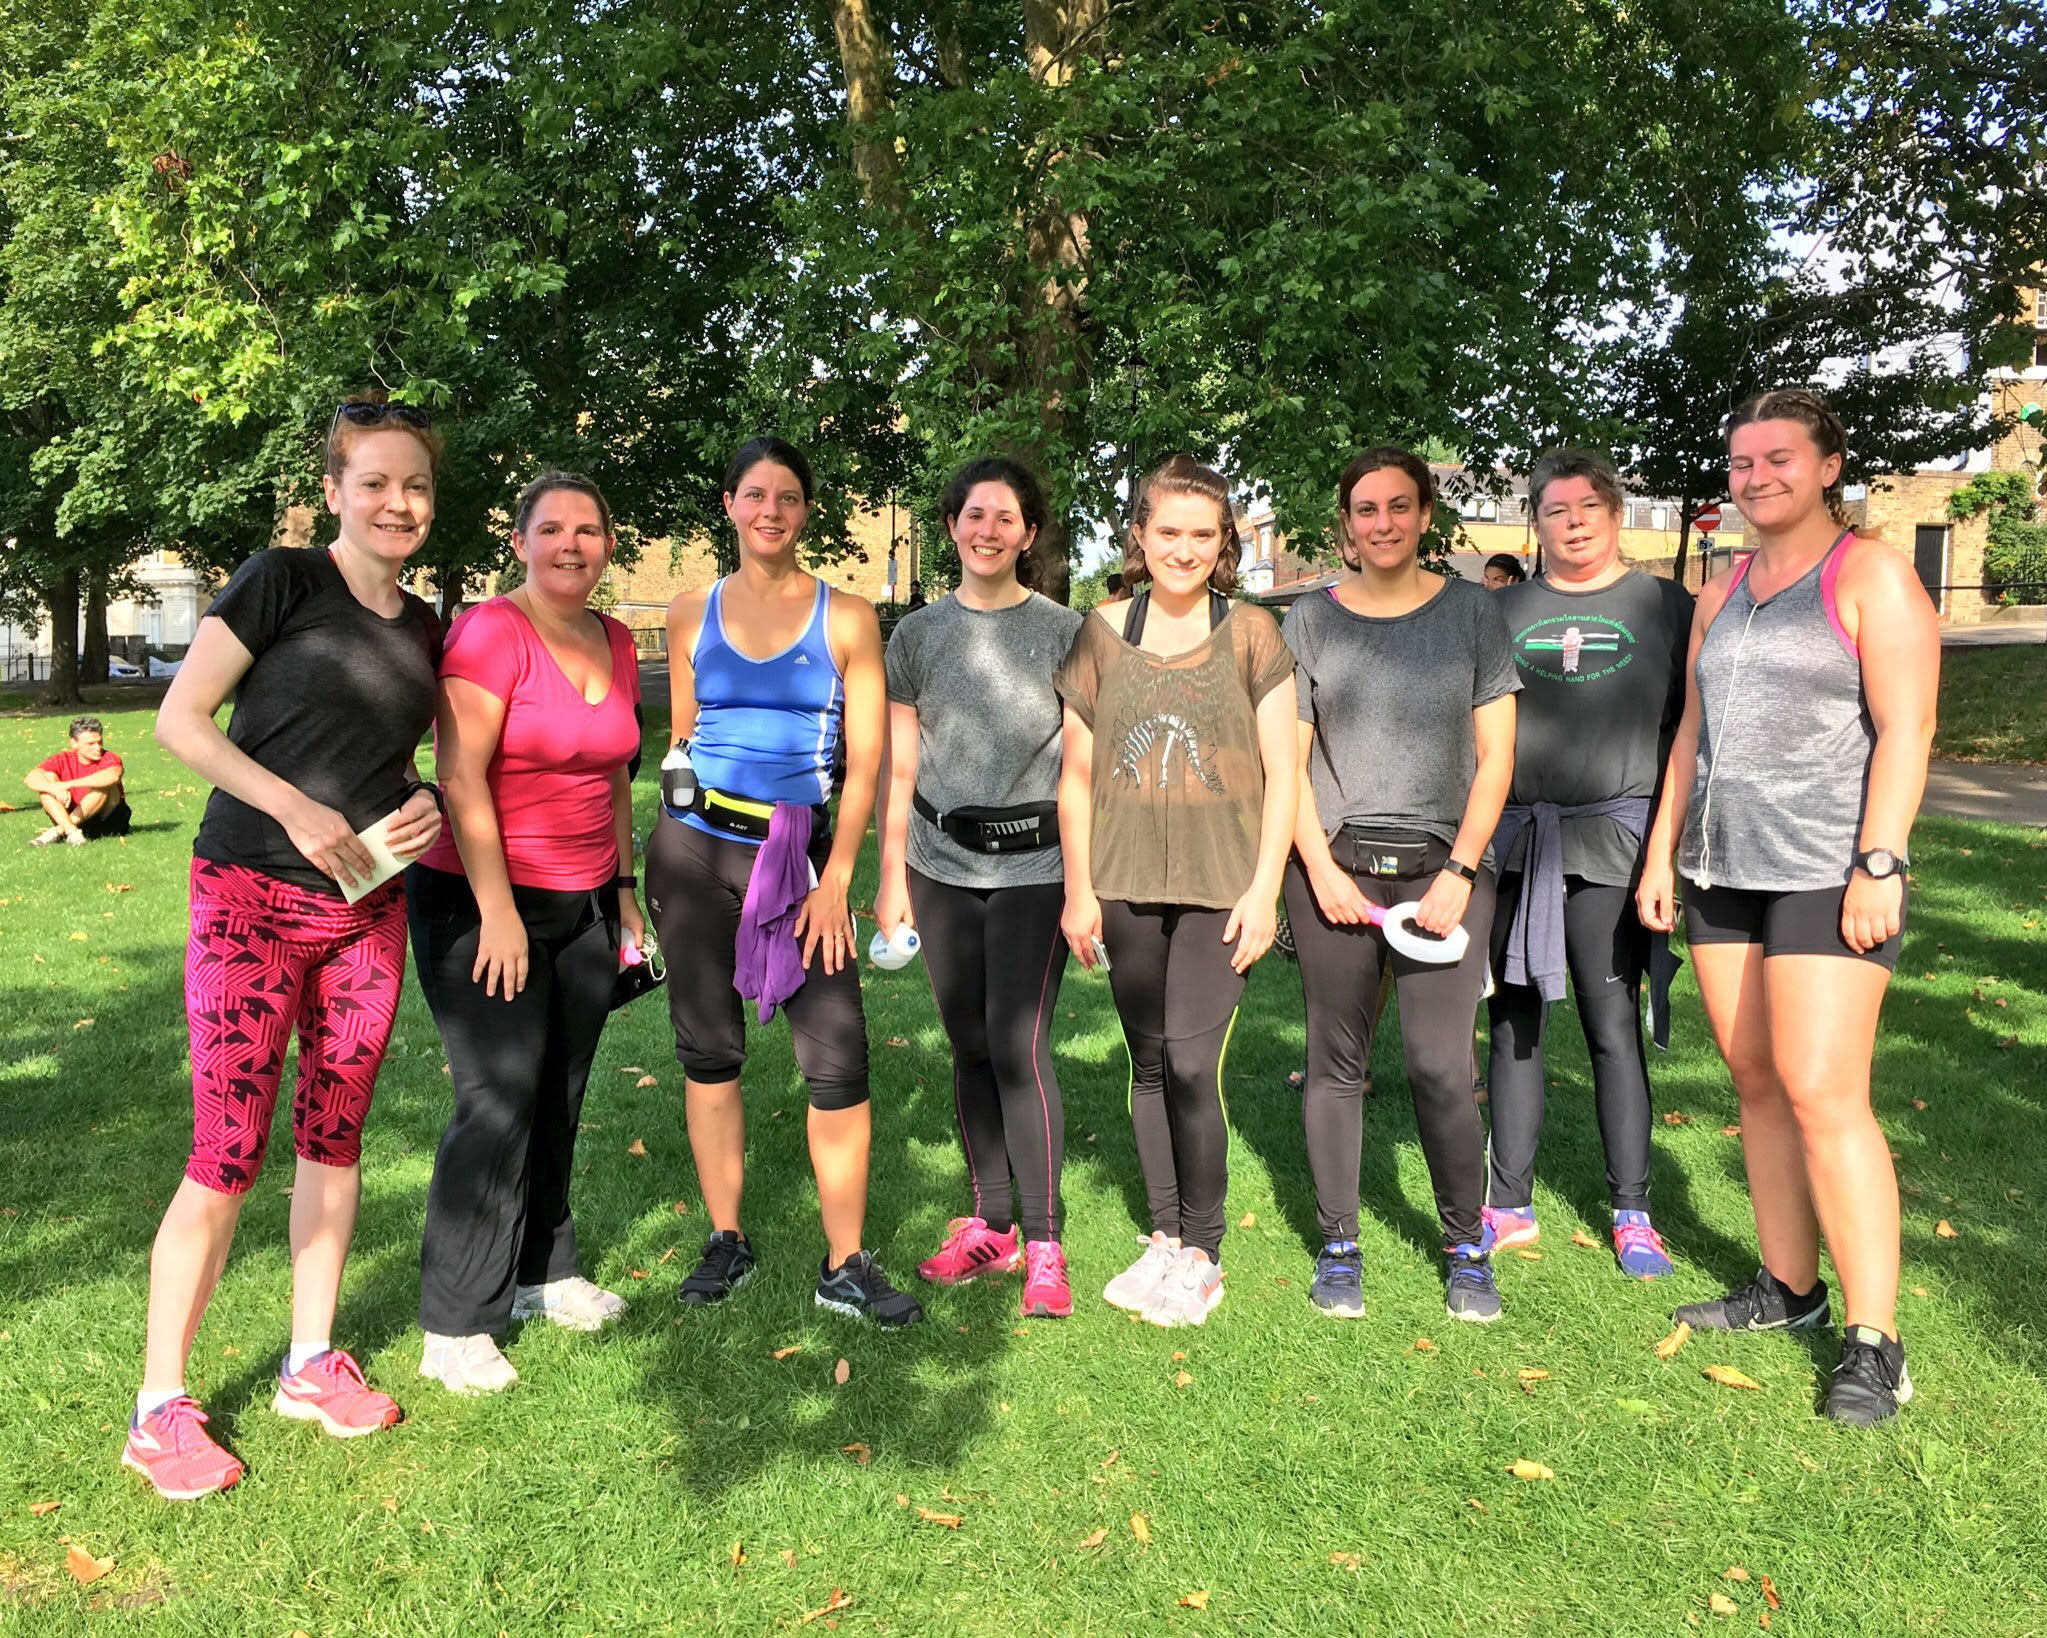 Lazy Girl Running - london running groups